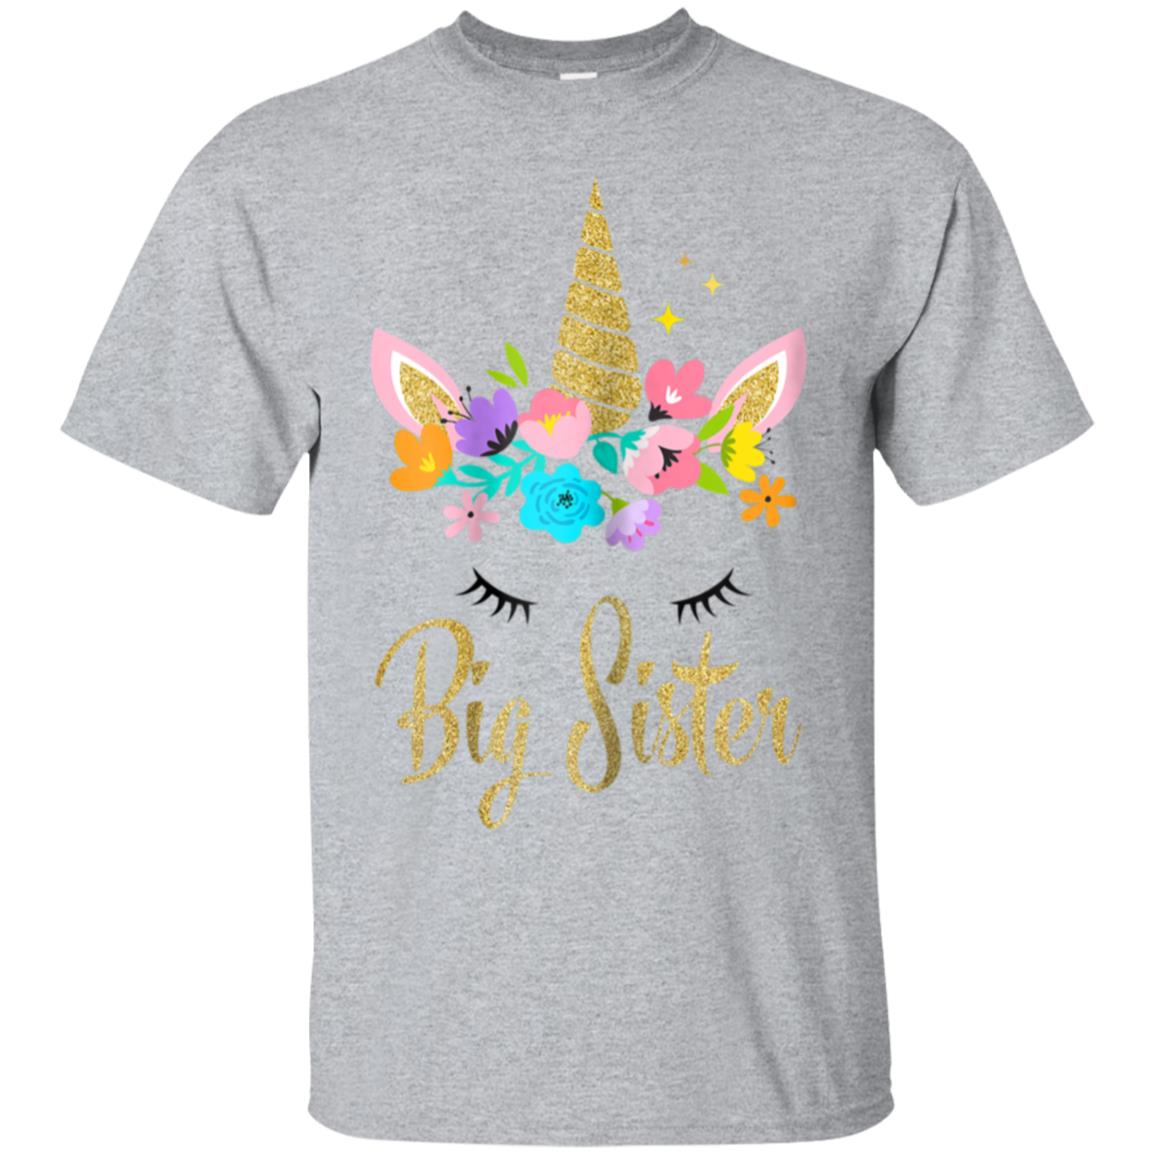 Kids Unicorn Big Sister Shirt I'm Going to be a Big Sister T 99promocode